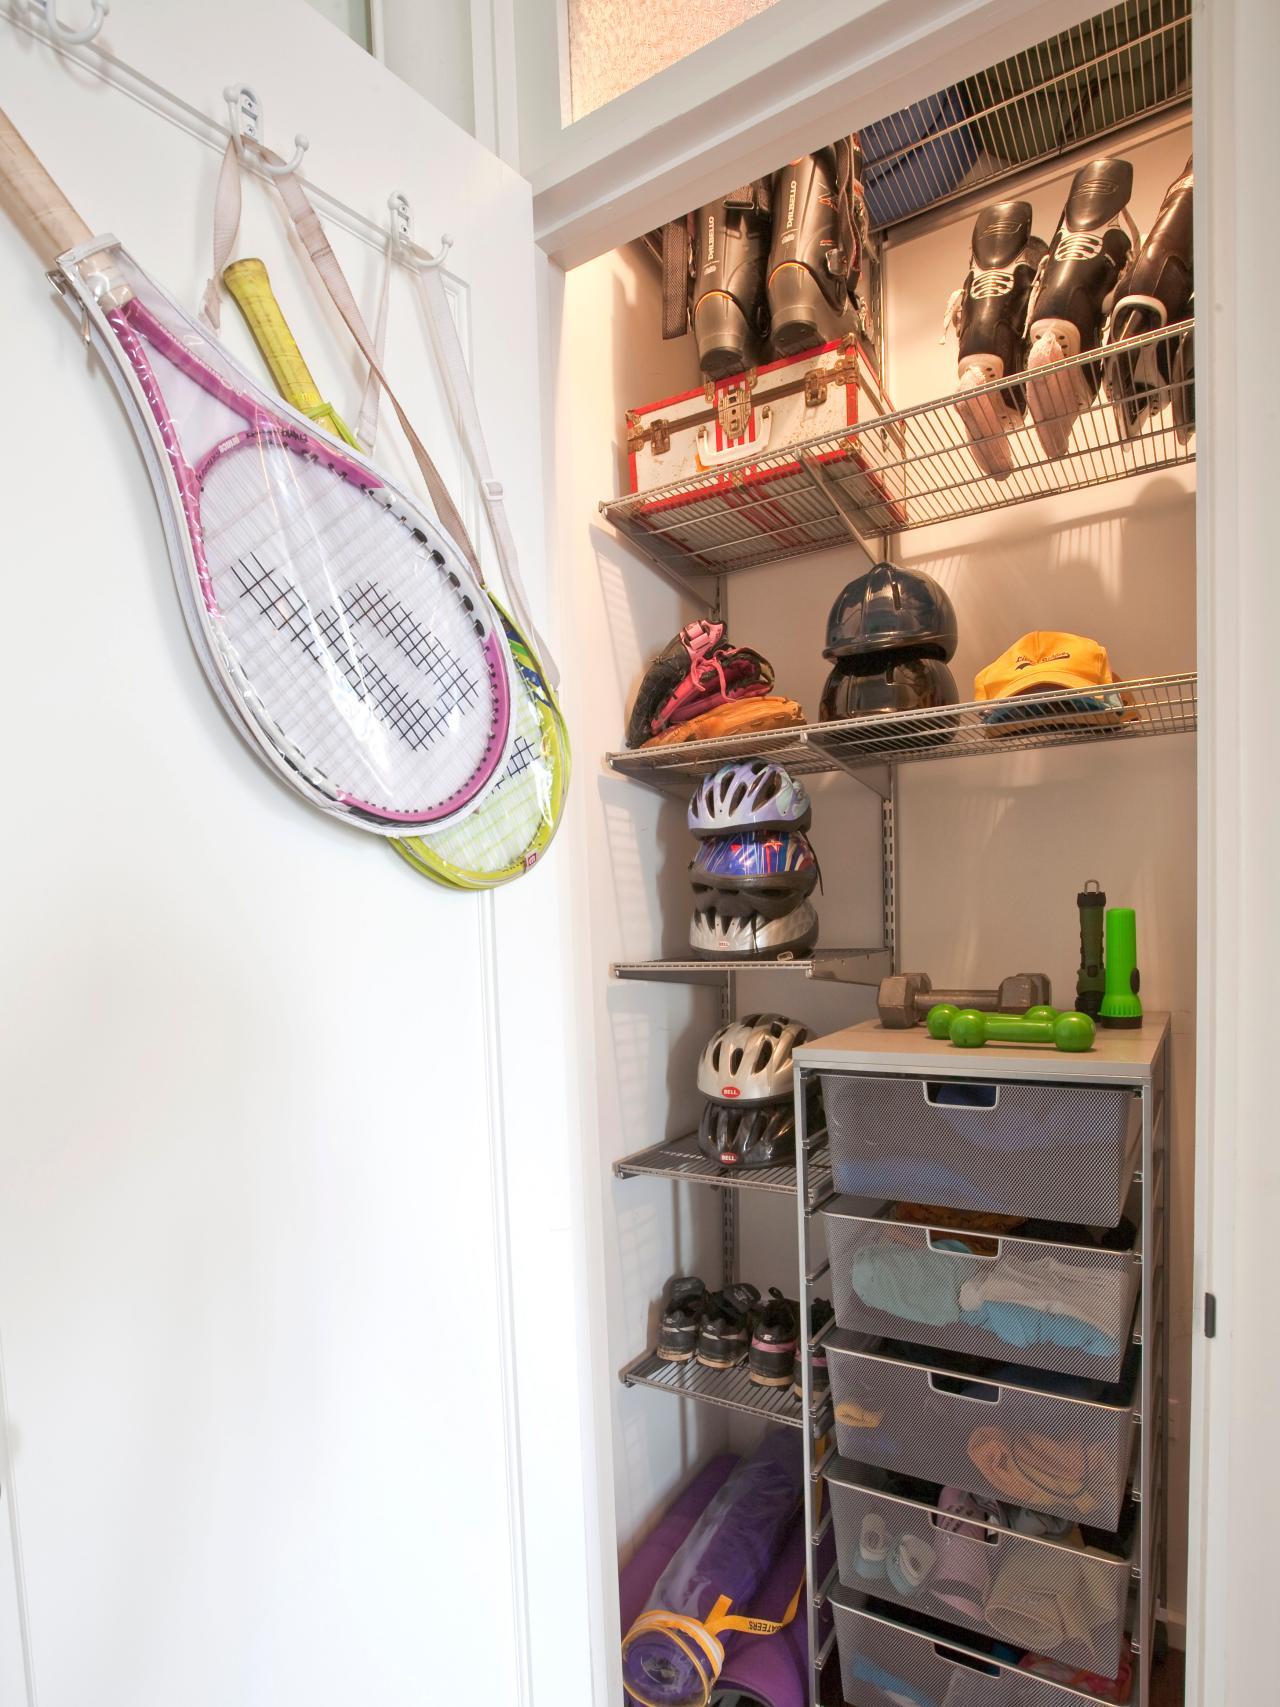 Tips for Organizing a Small Reach in Closet